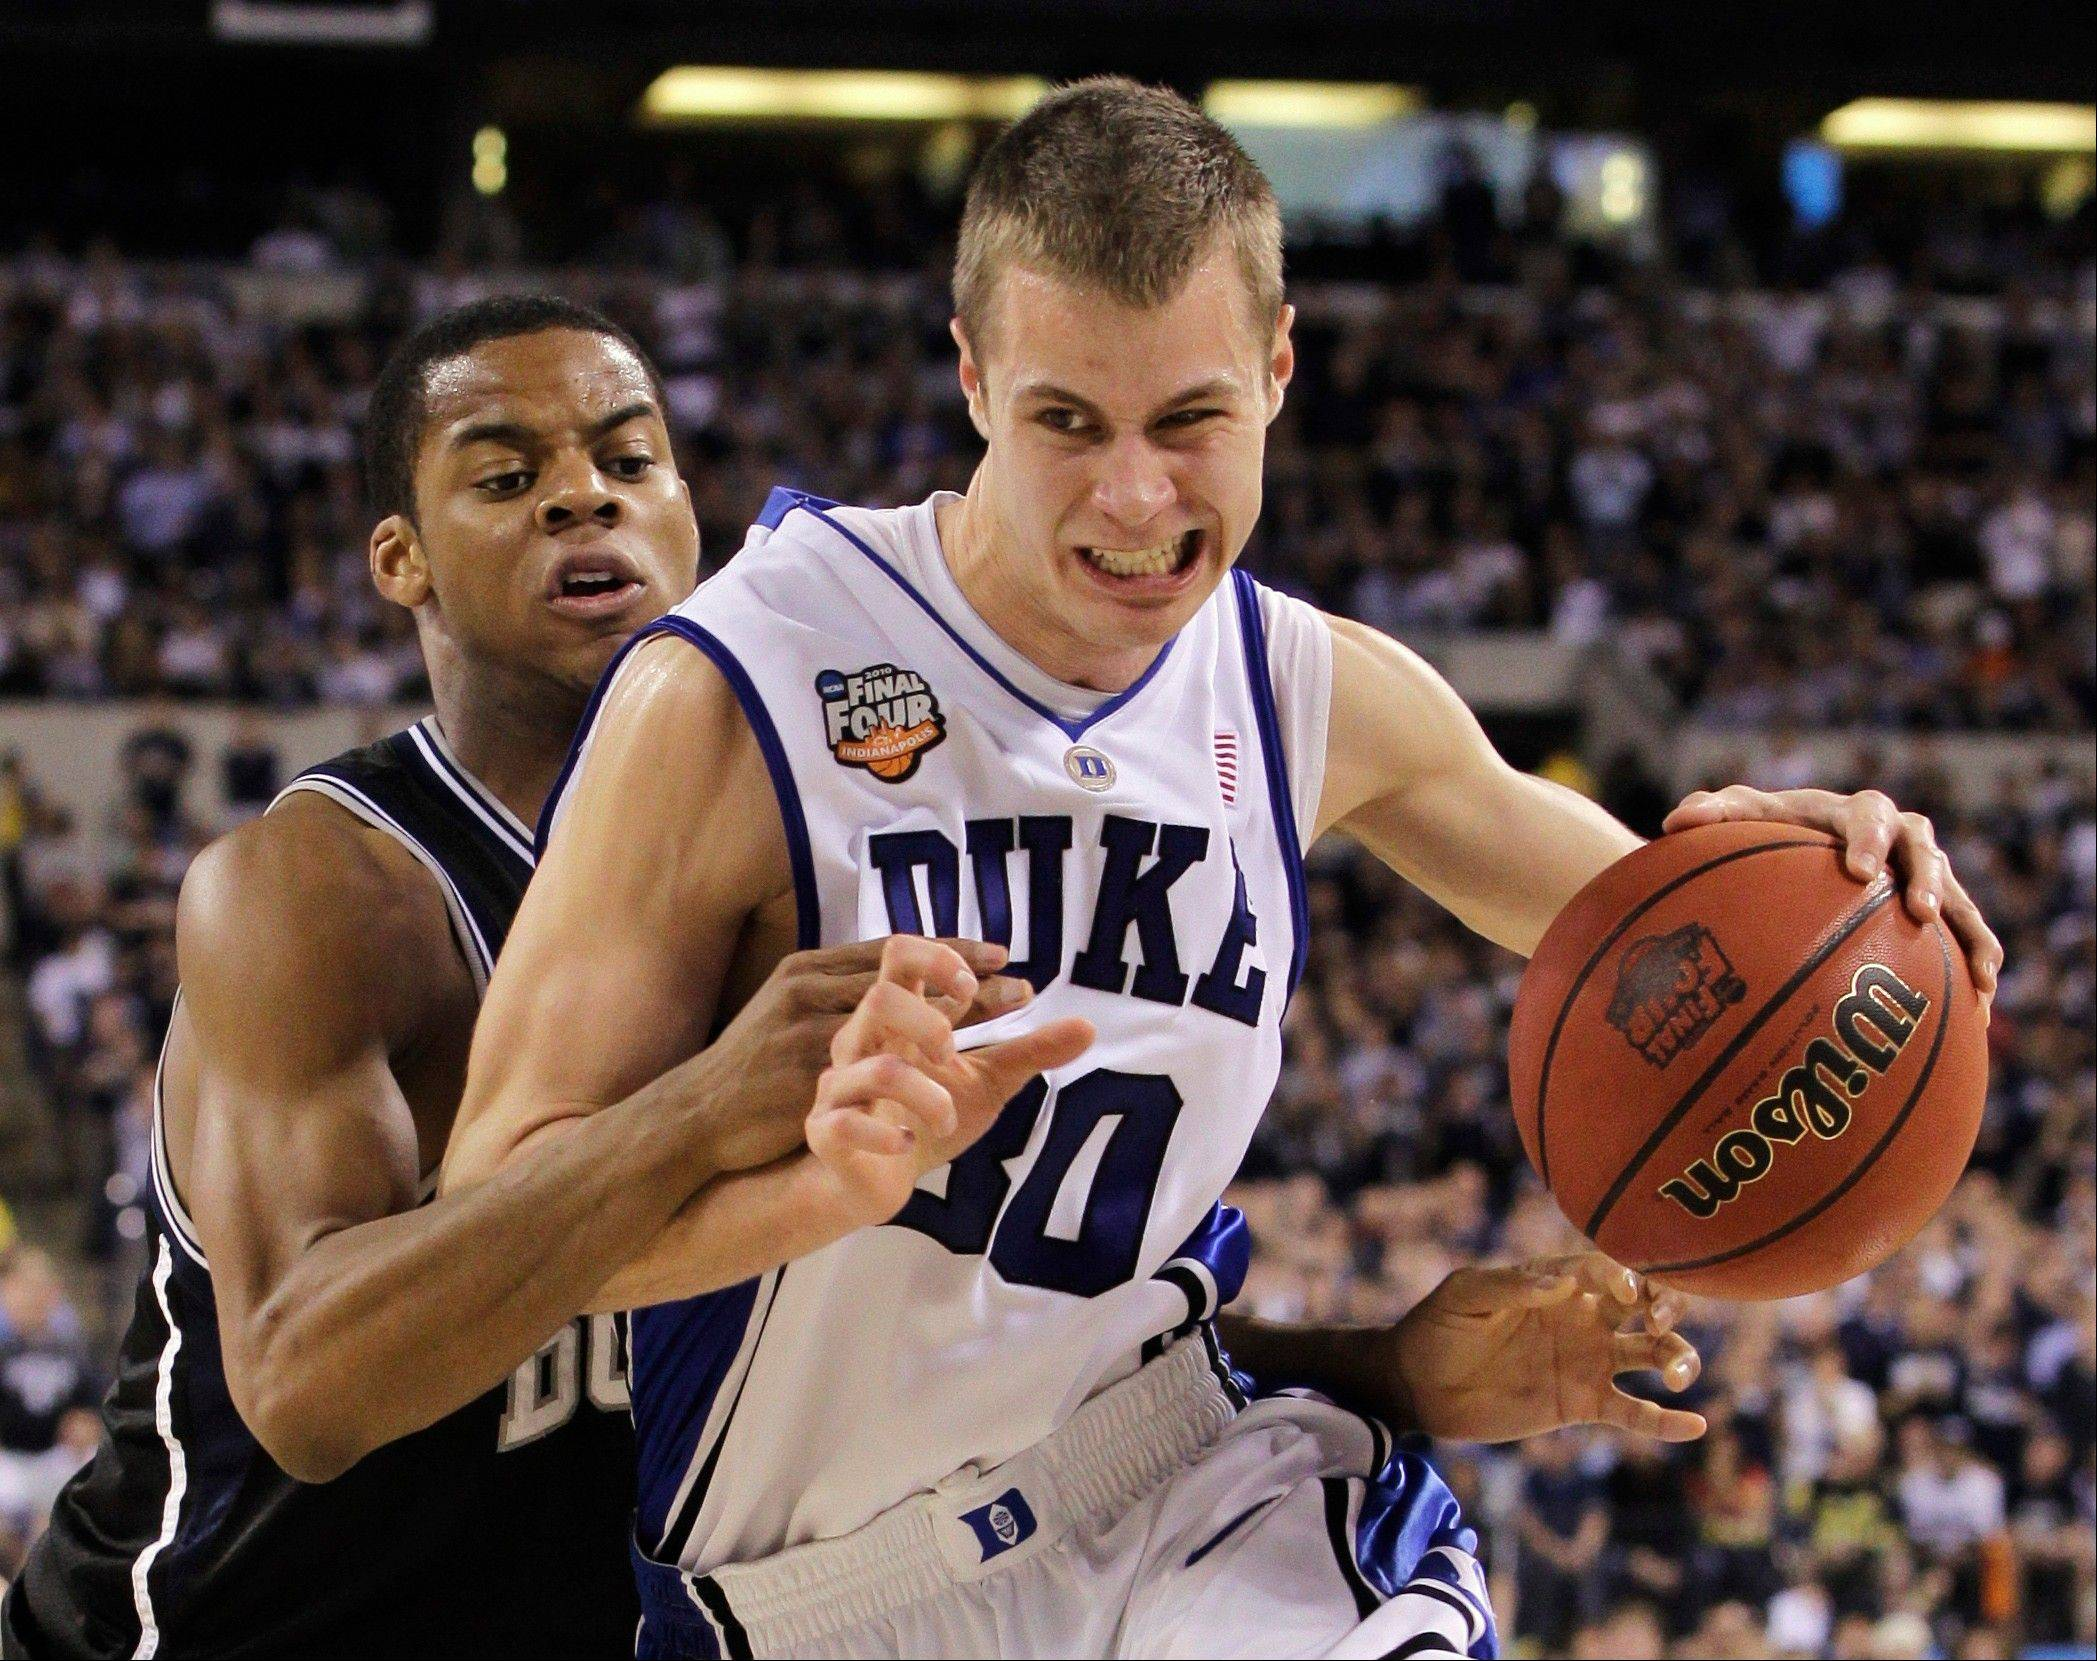 Guard Jon Scheyer, shown playing for Duke in the 2010 NCAA men's title game, has joined perennial basketball powerhouse Maccabi Tel Aviv in Israel.